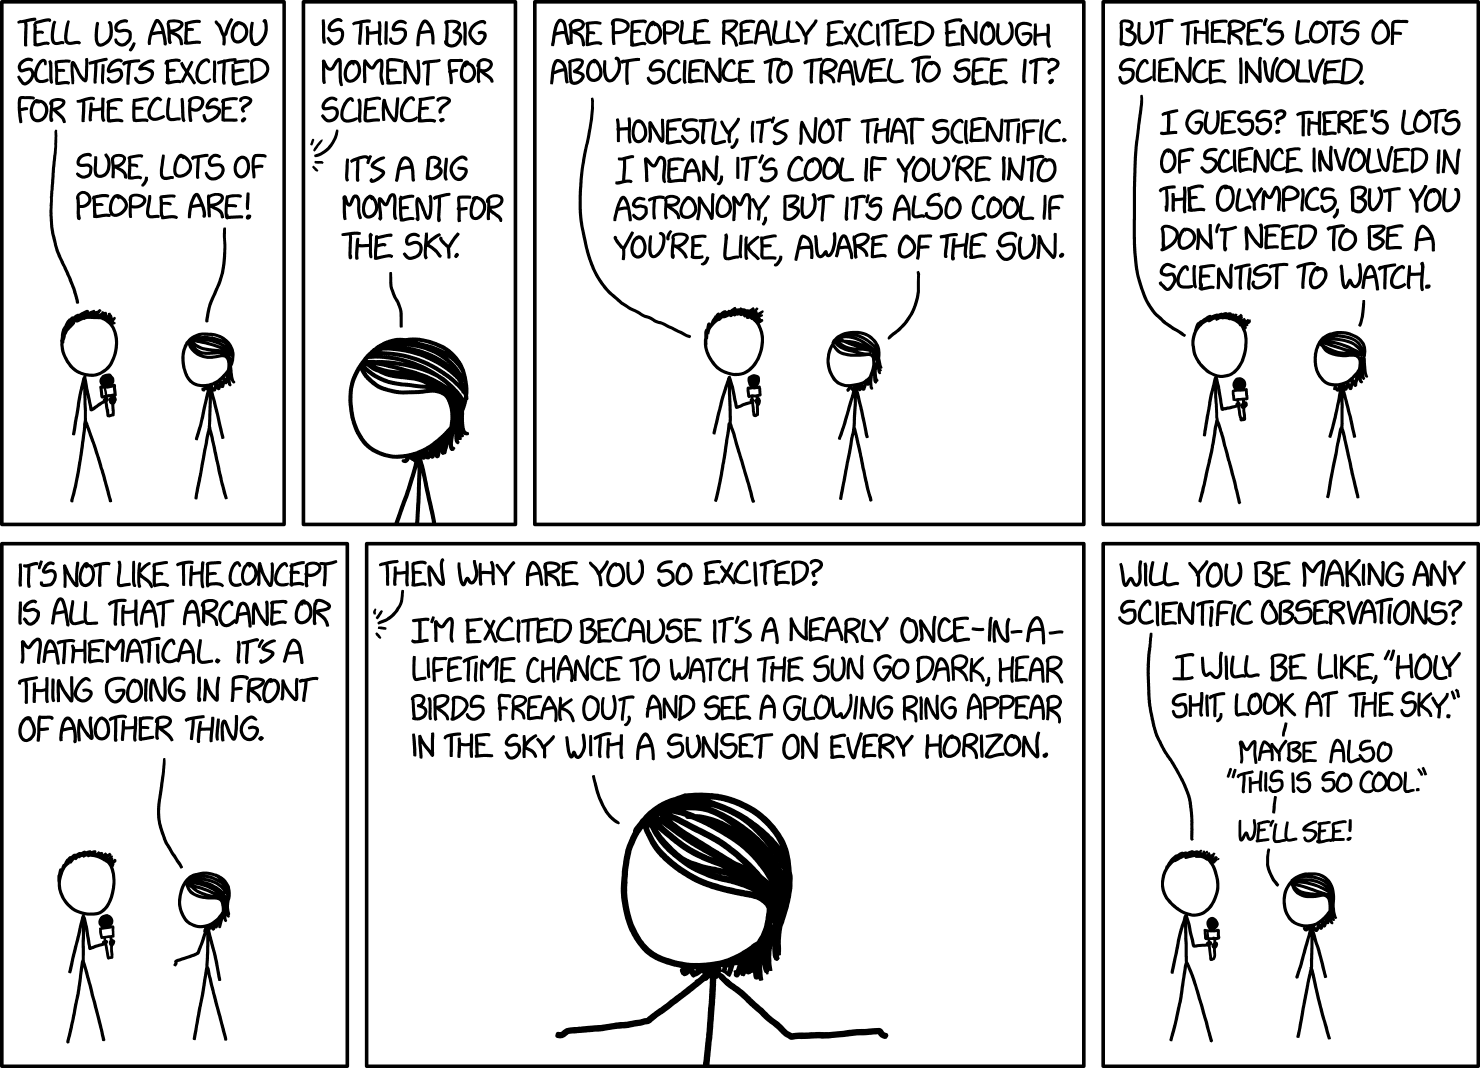 I think xkcd made a comic just for Mano!